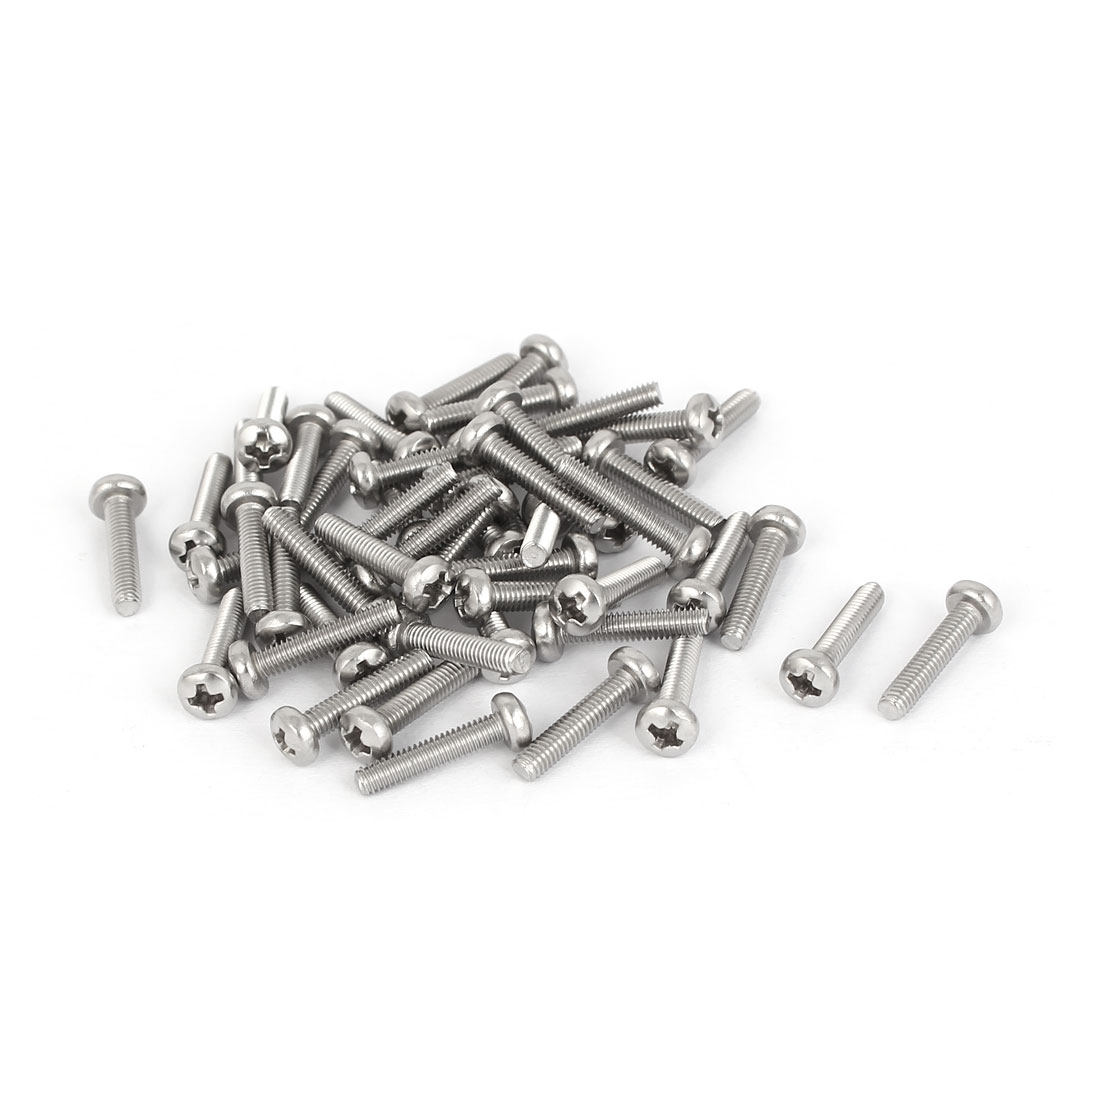 50 Pcs M2.5x12mm 316 Stainless Steel Phillips Pan Head Machine Screws Fasteners